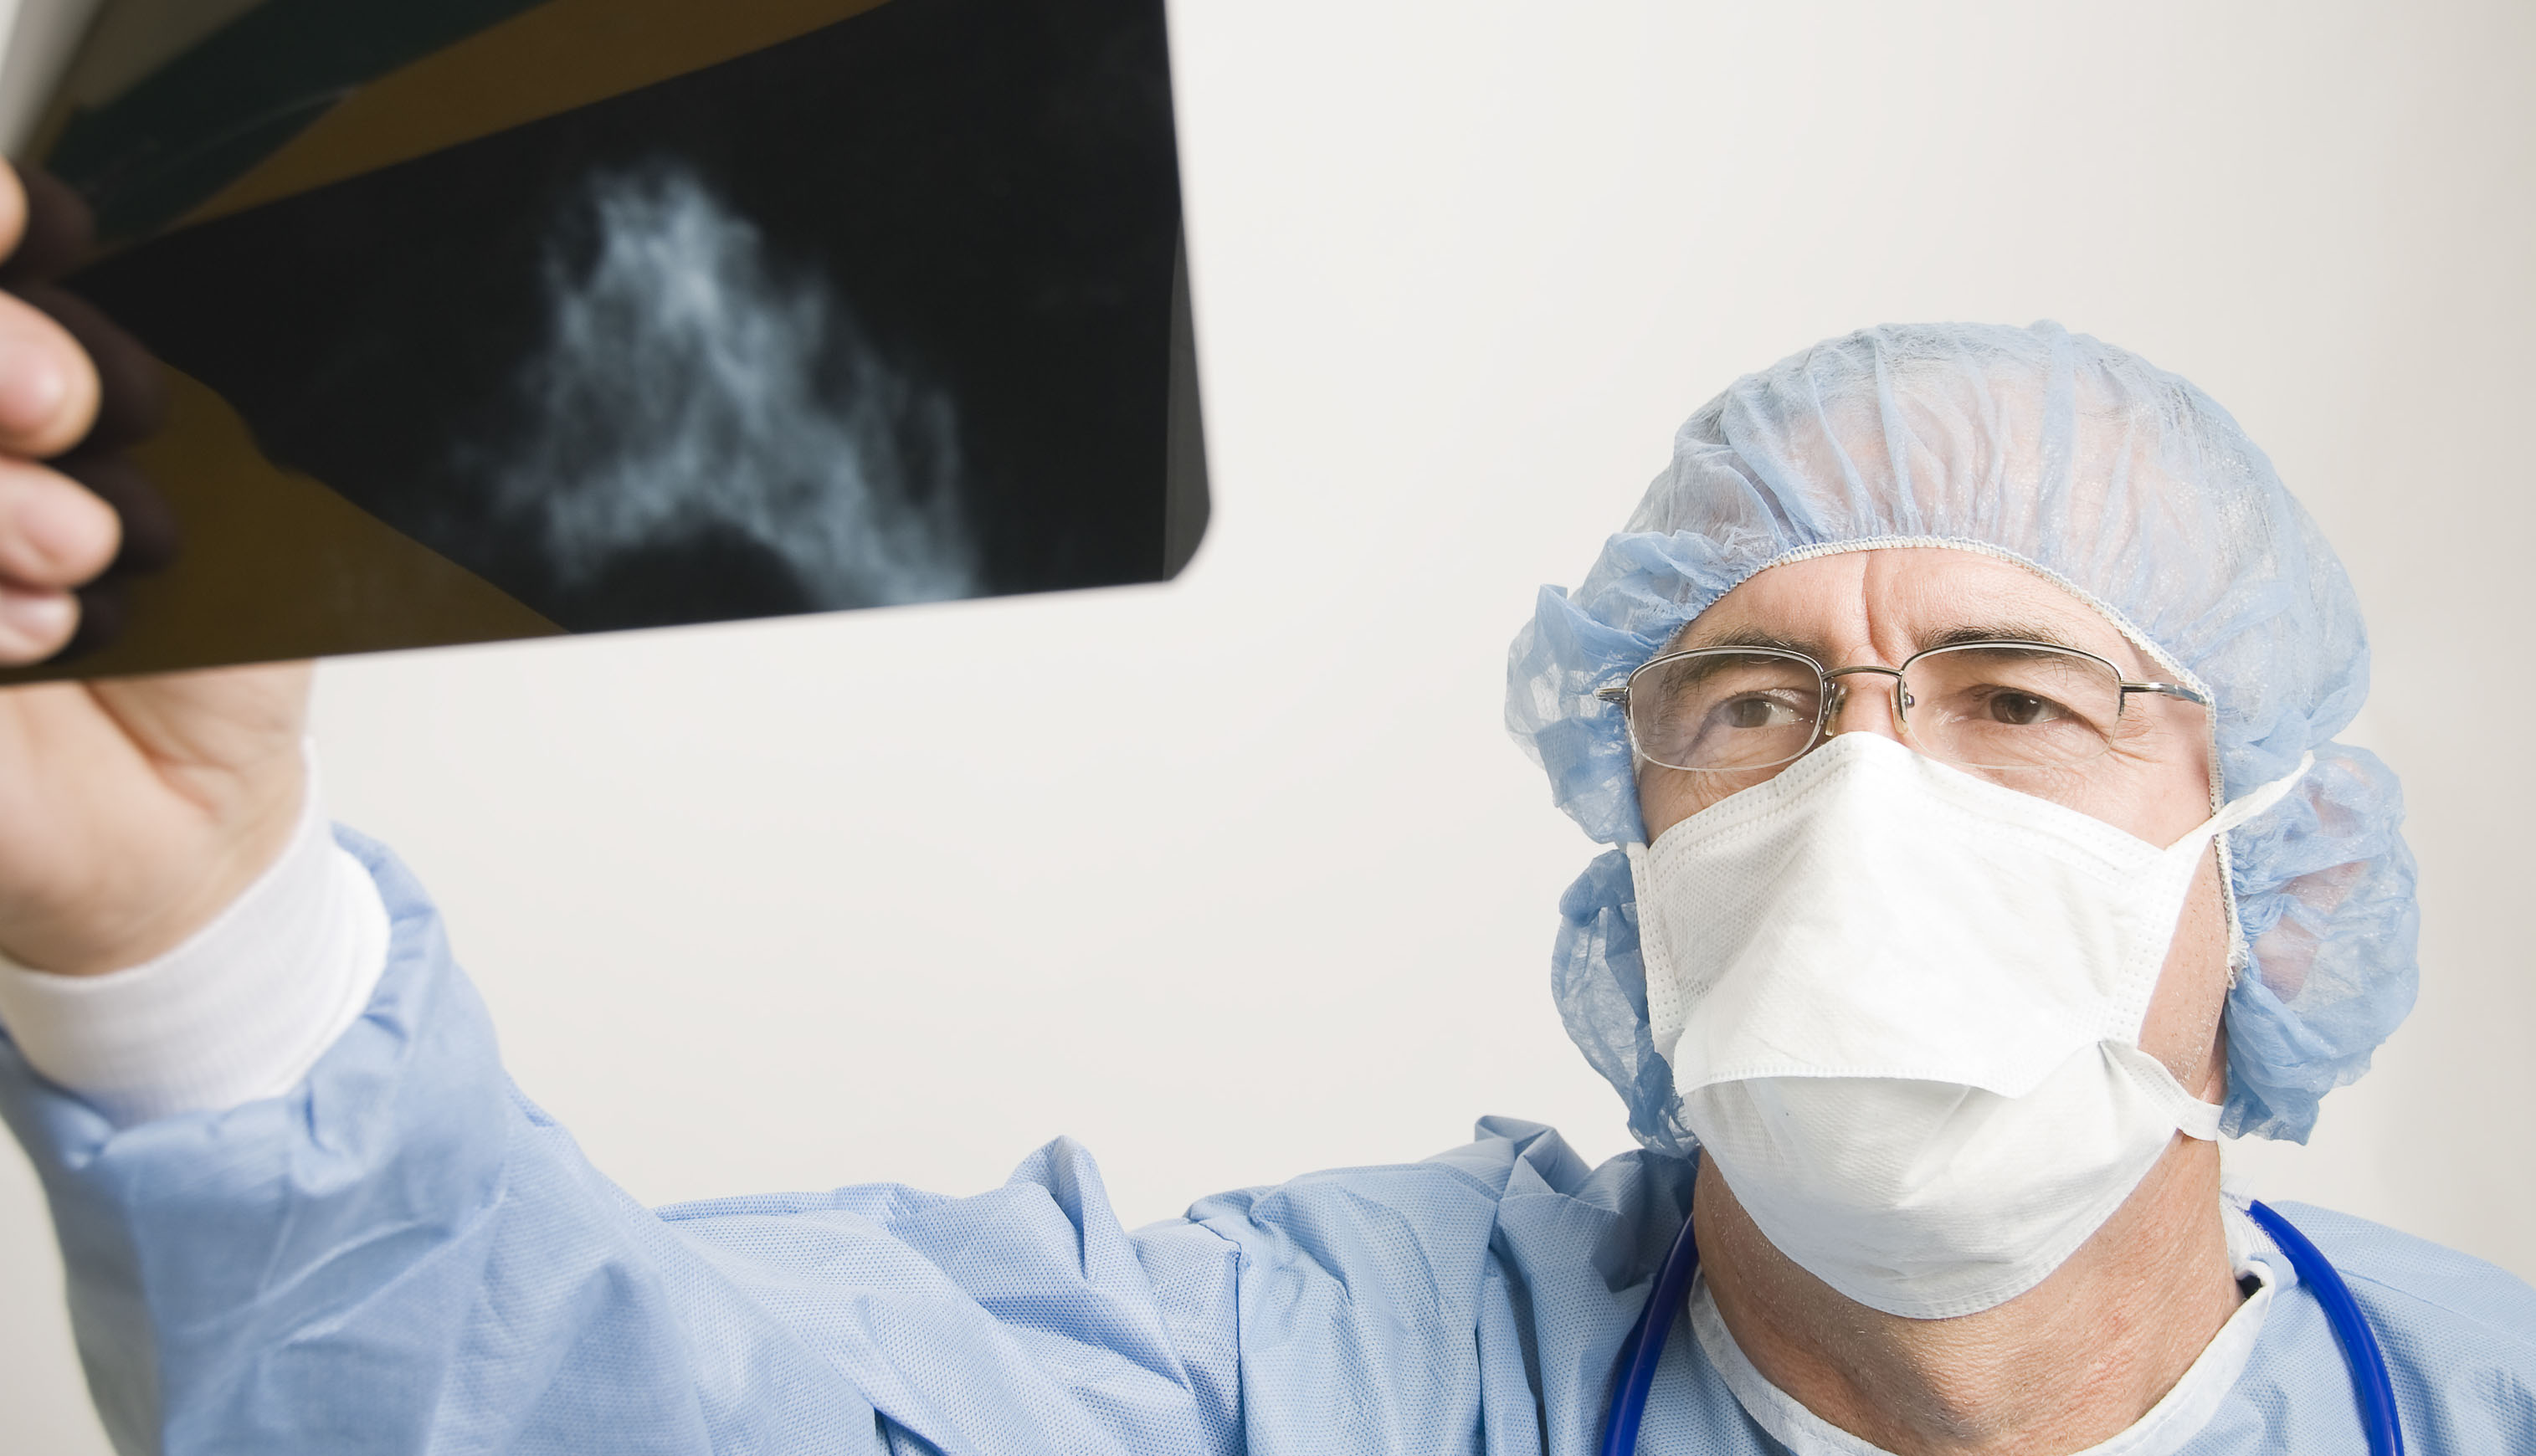 doctor wearing protective gear looking at an x-ray